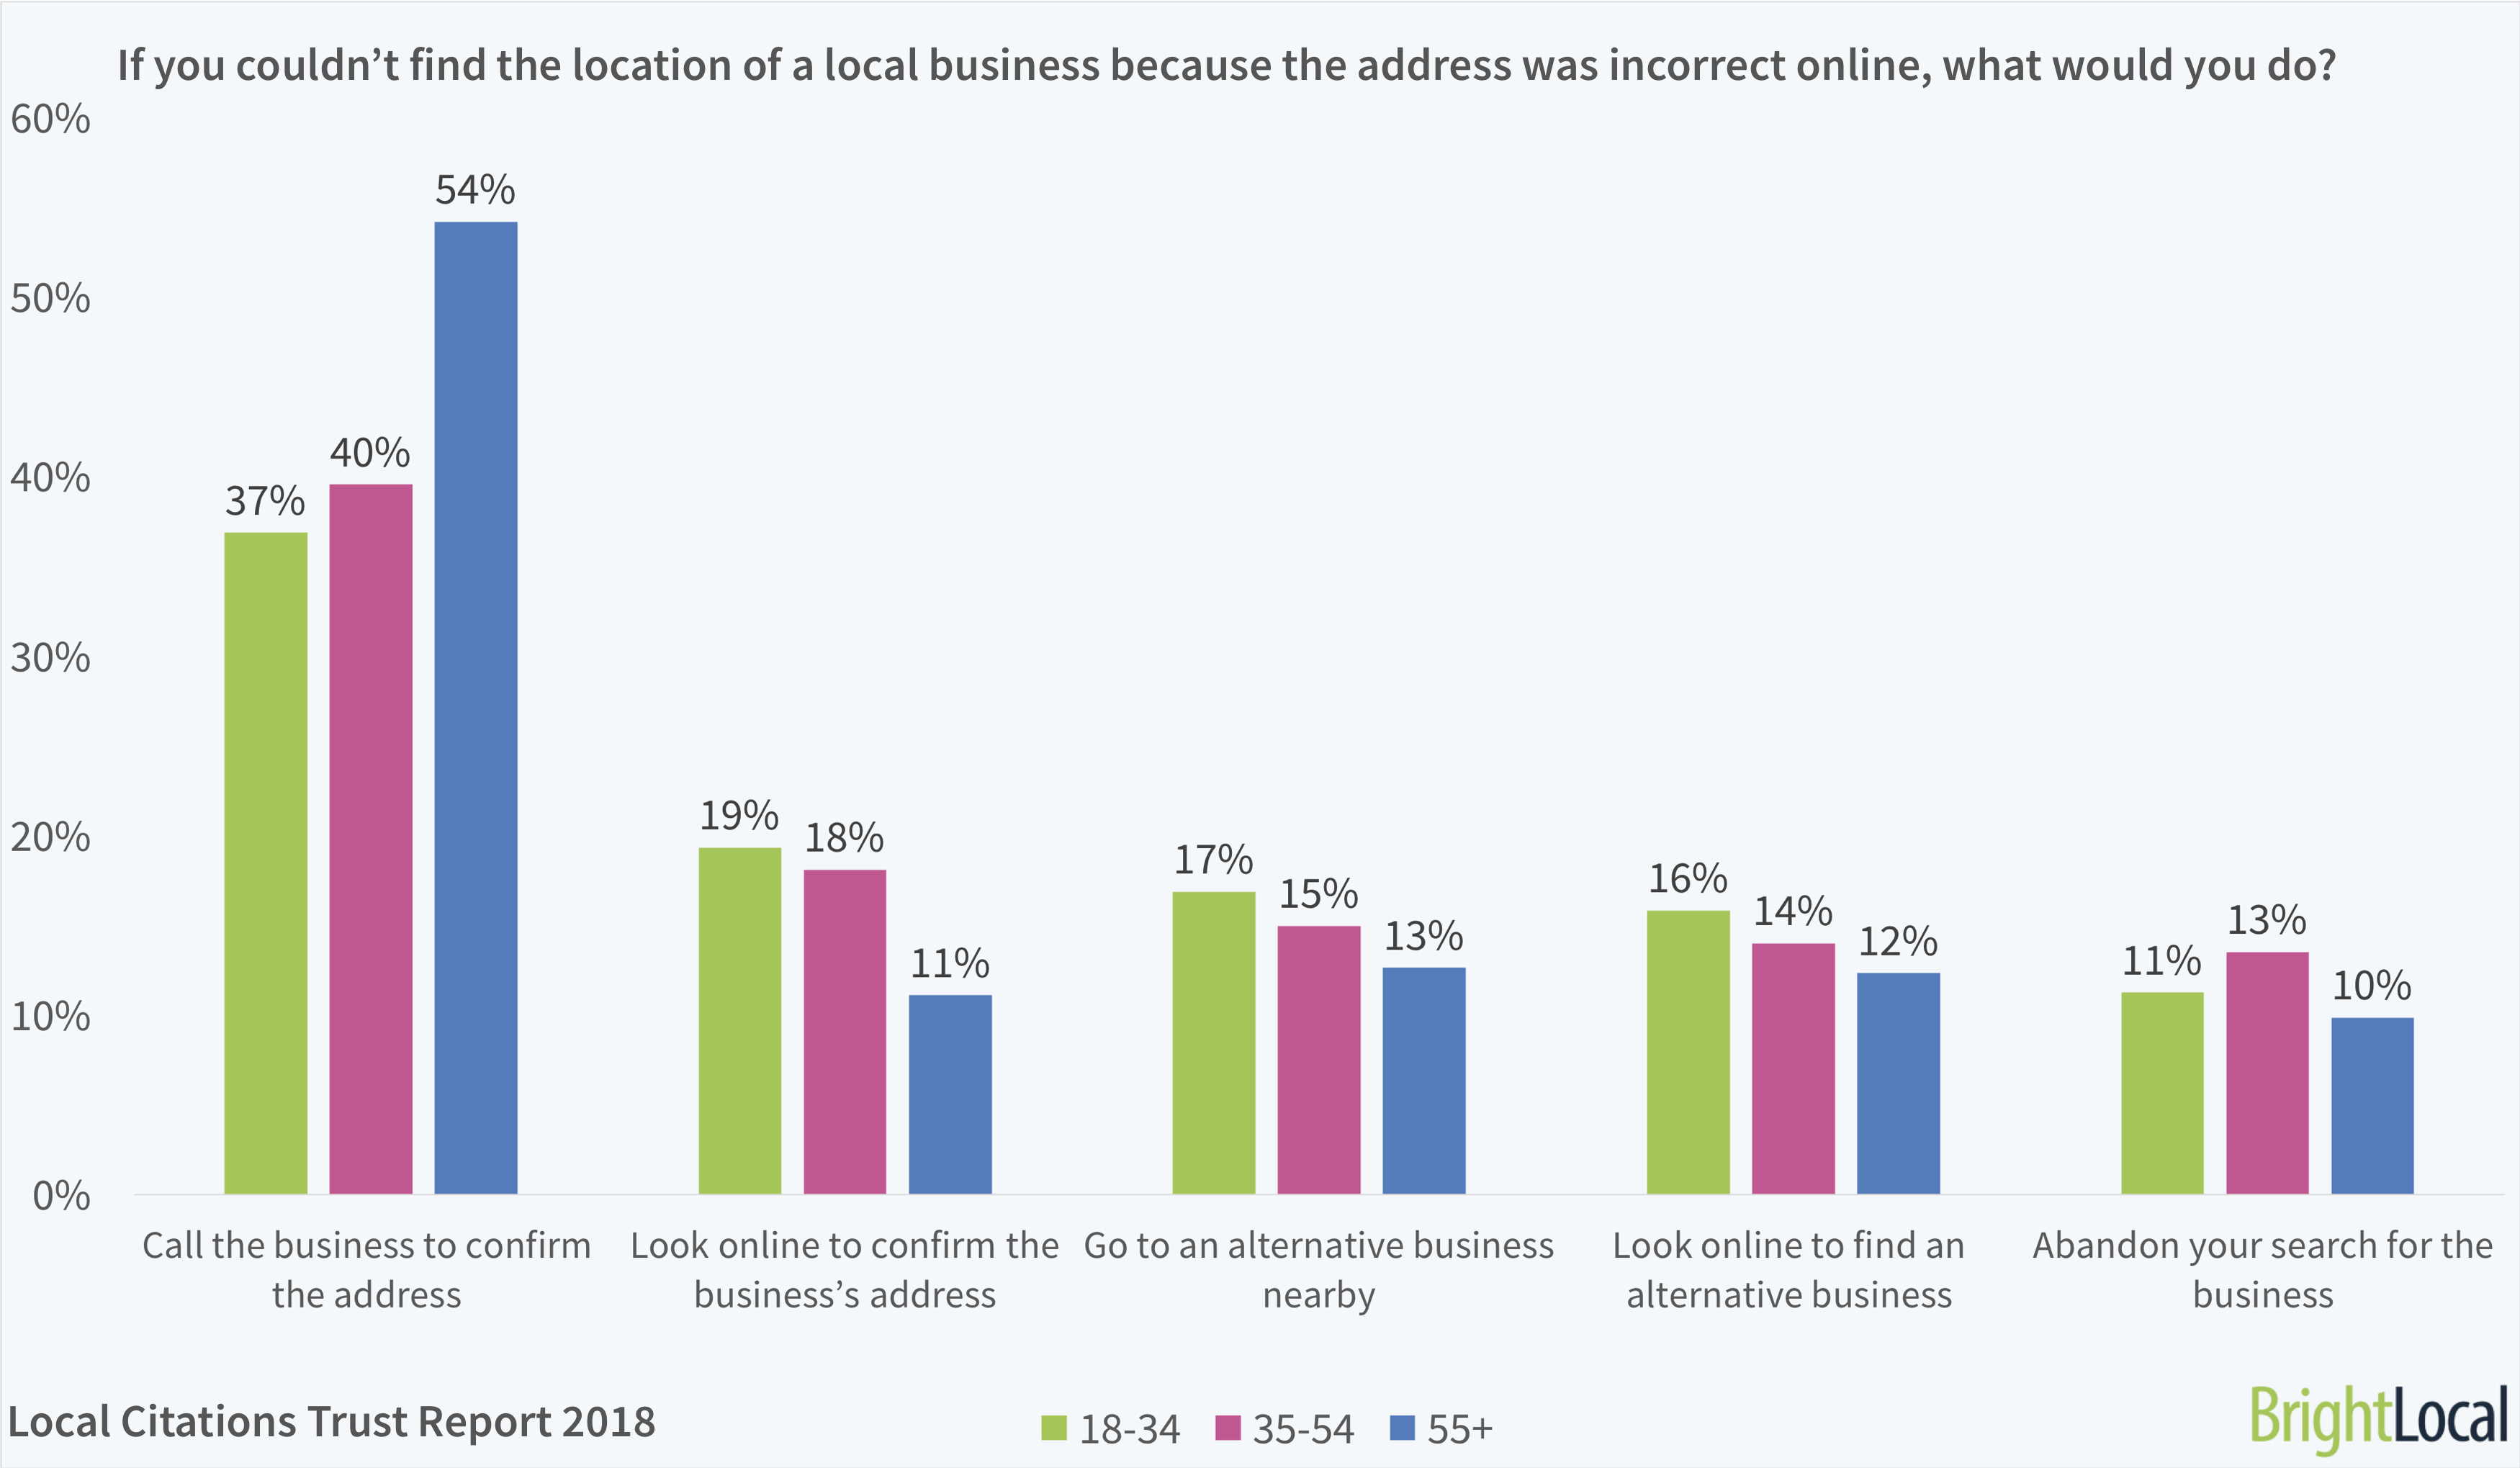 If you couldn't find the location of a local business because the address was incorrect online, what would you do? BrightLocal Local Citations Trust Report 2018